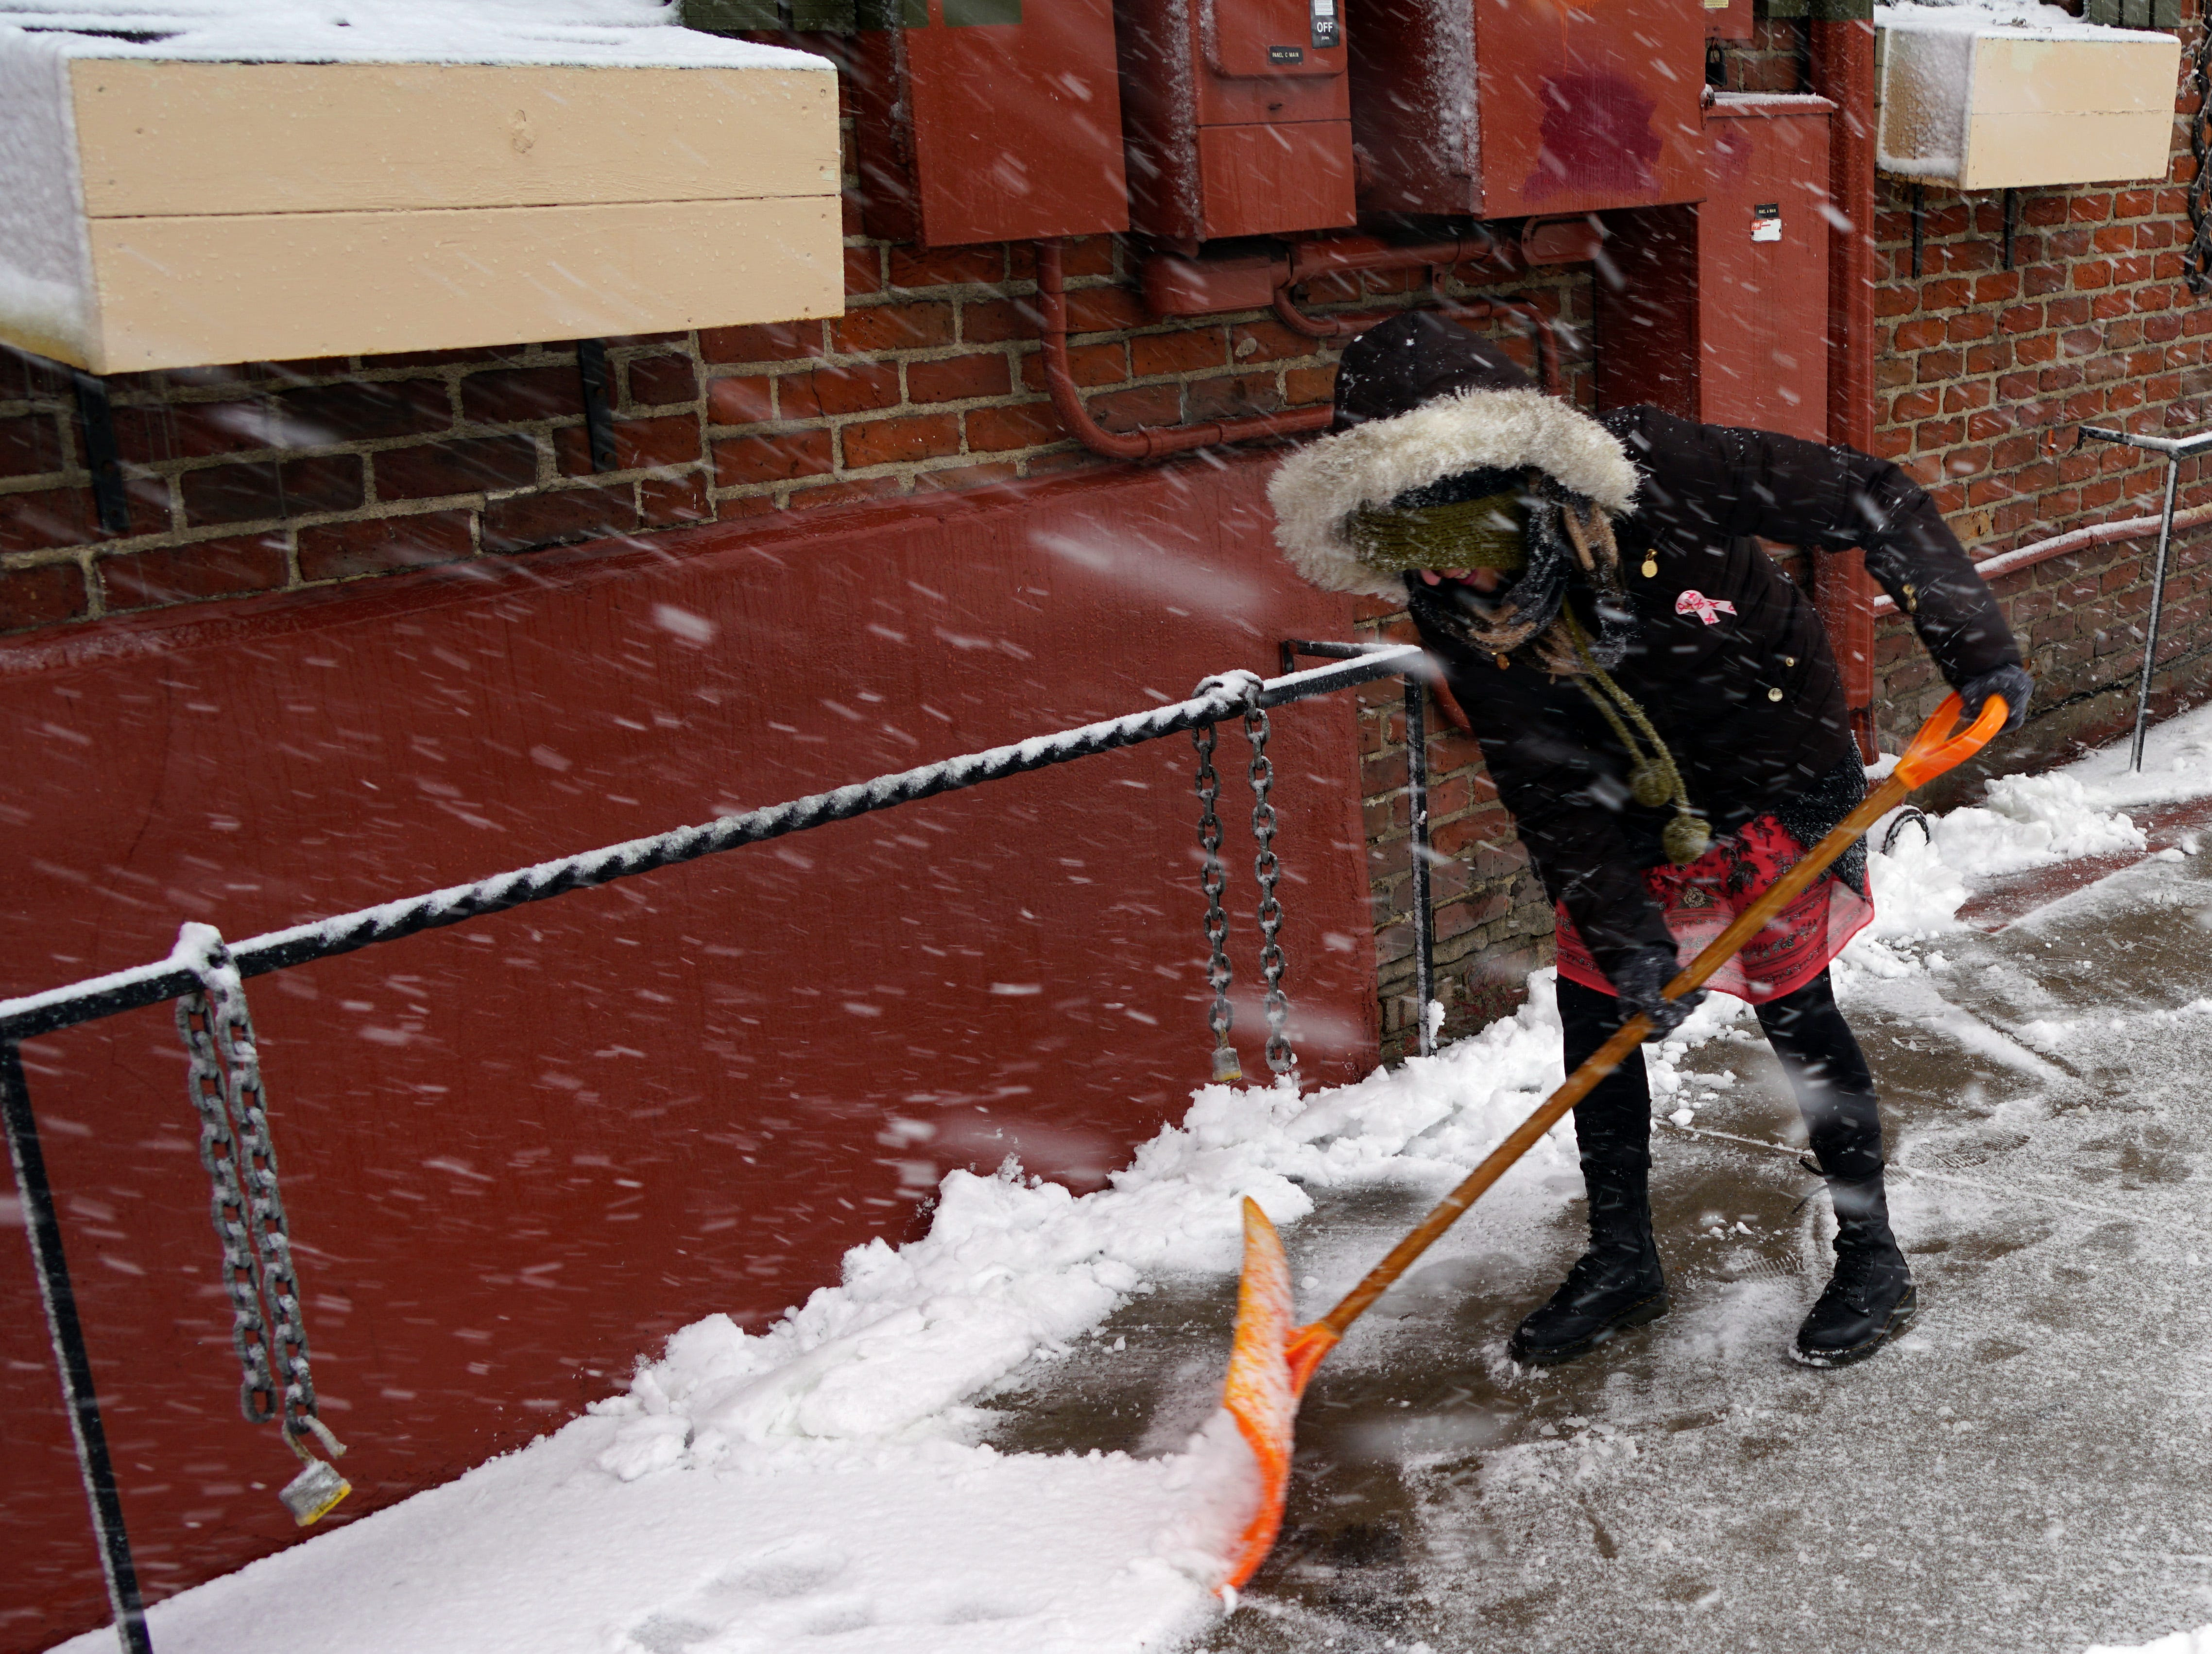 """Head bent against the driving snow, Rindi Gray, 48, shovels the sidewalk outside Denver's """"My  Brothers Bar,"""" during a blizzard, March 13, 2019."""